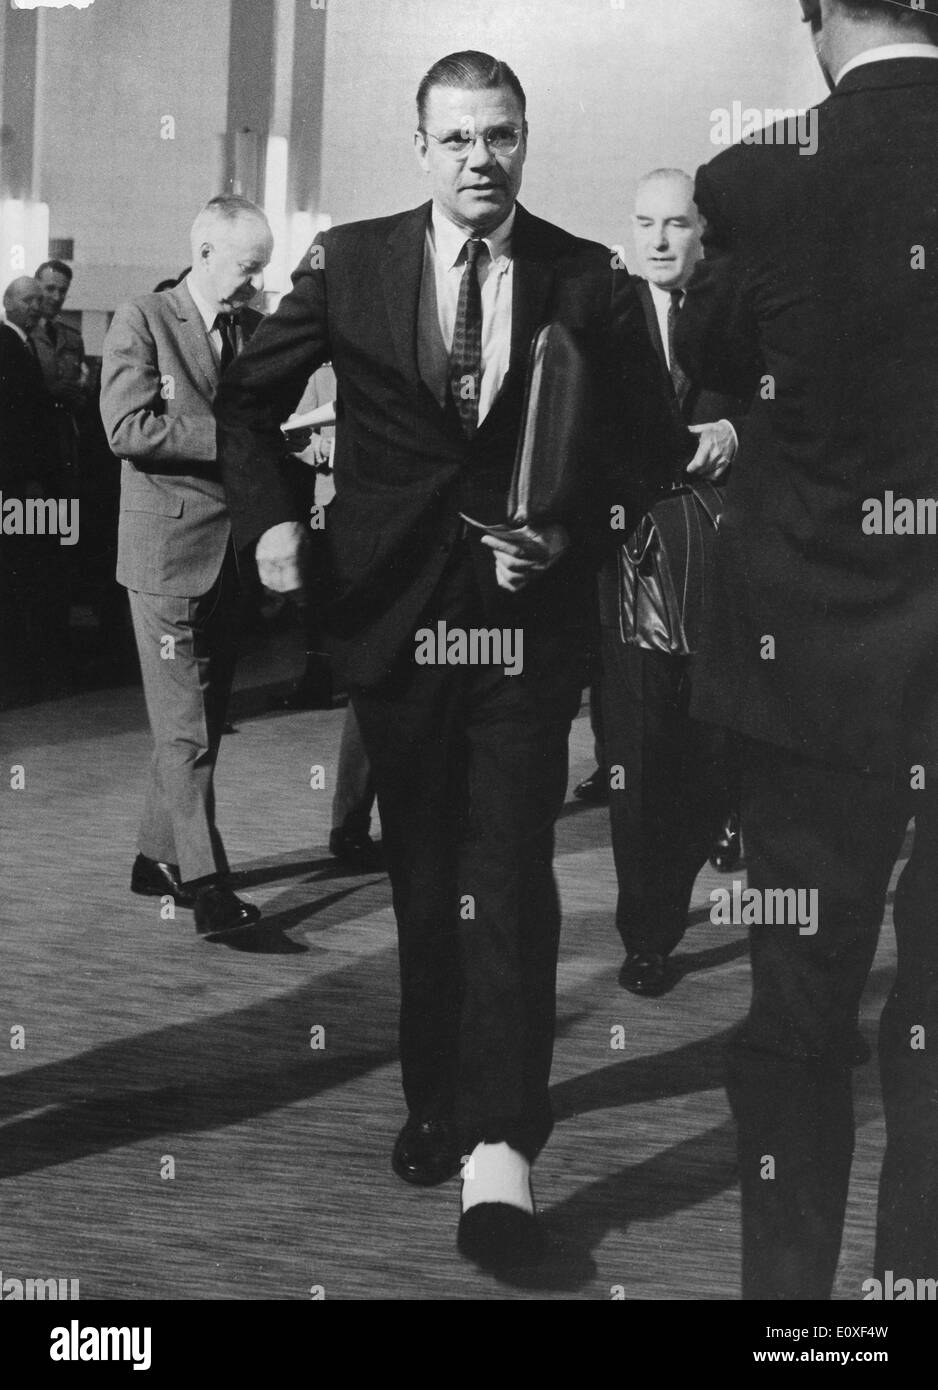 ROBERT MCNAMARA, the United States Secretary of Defense, walking with his plastered leg to headquarters, after his accident. - Stock Image